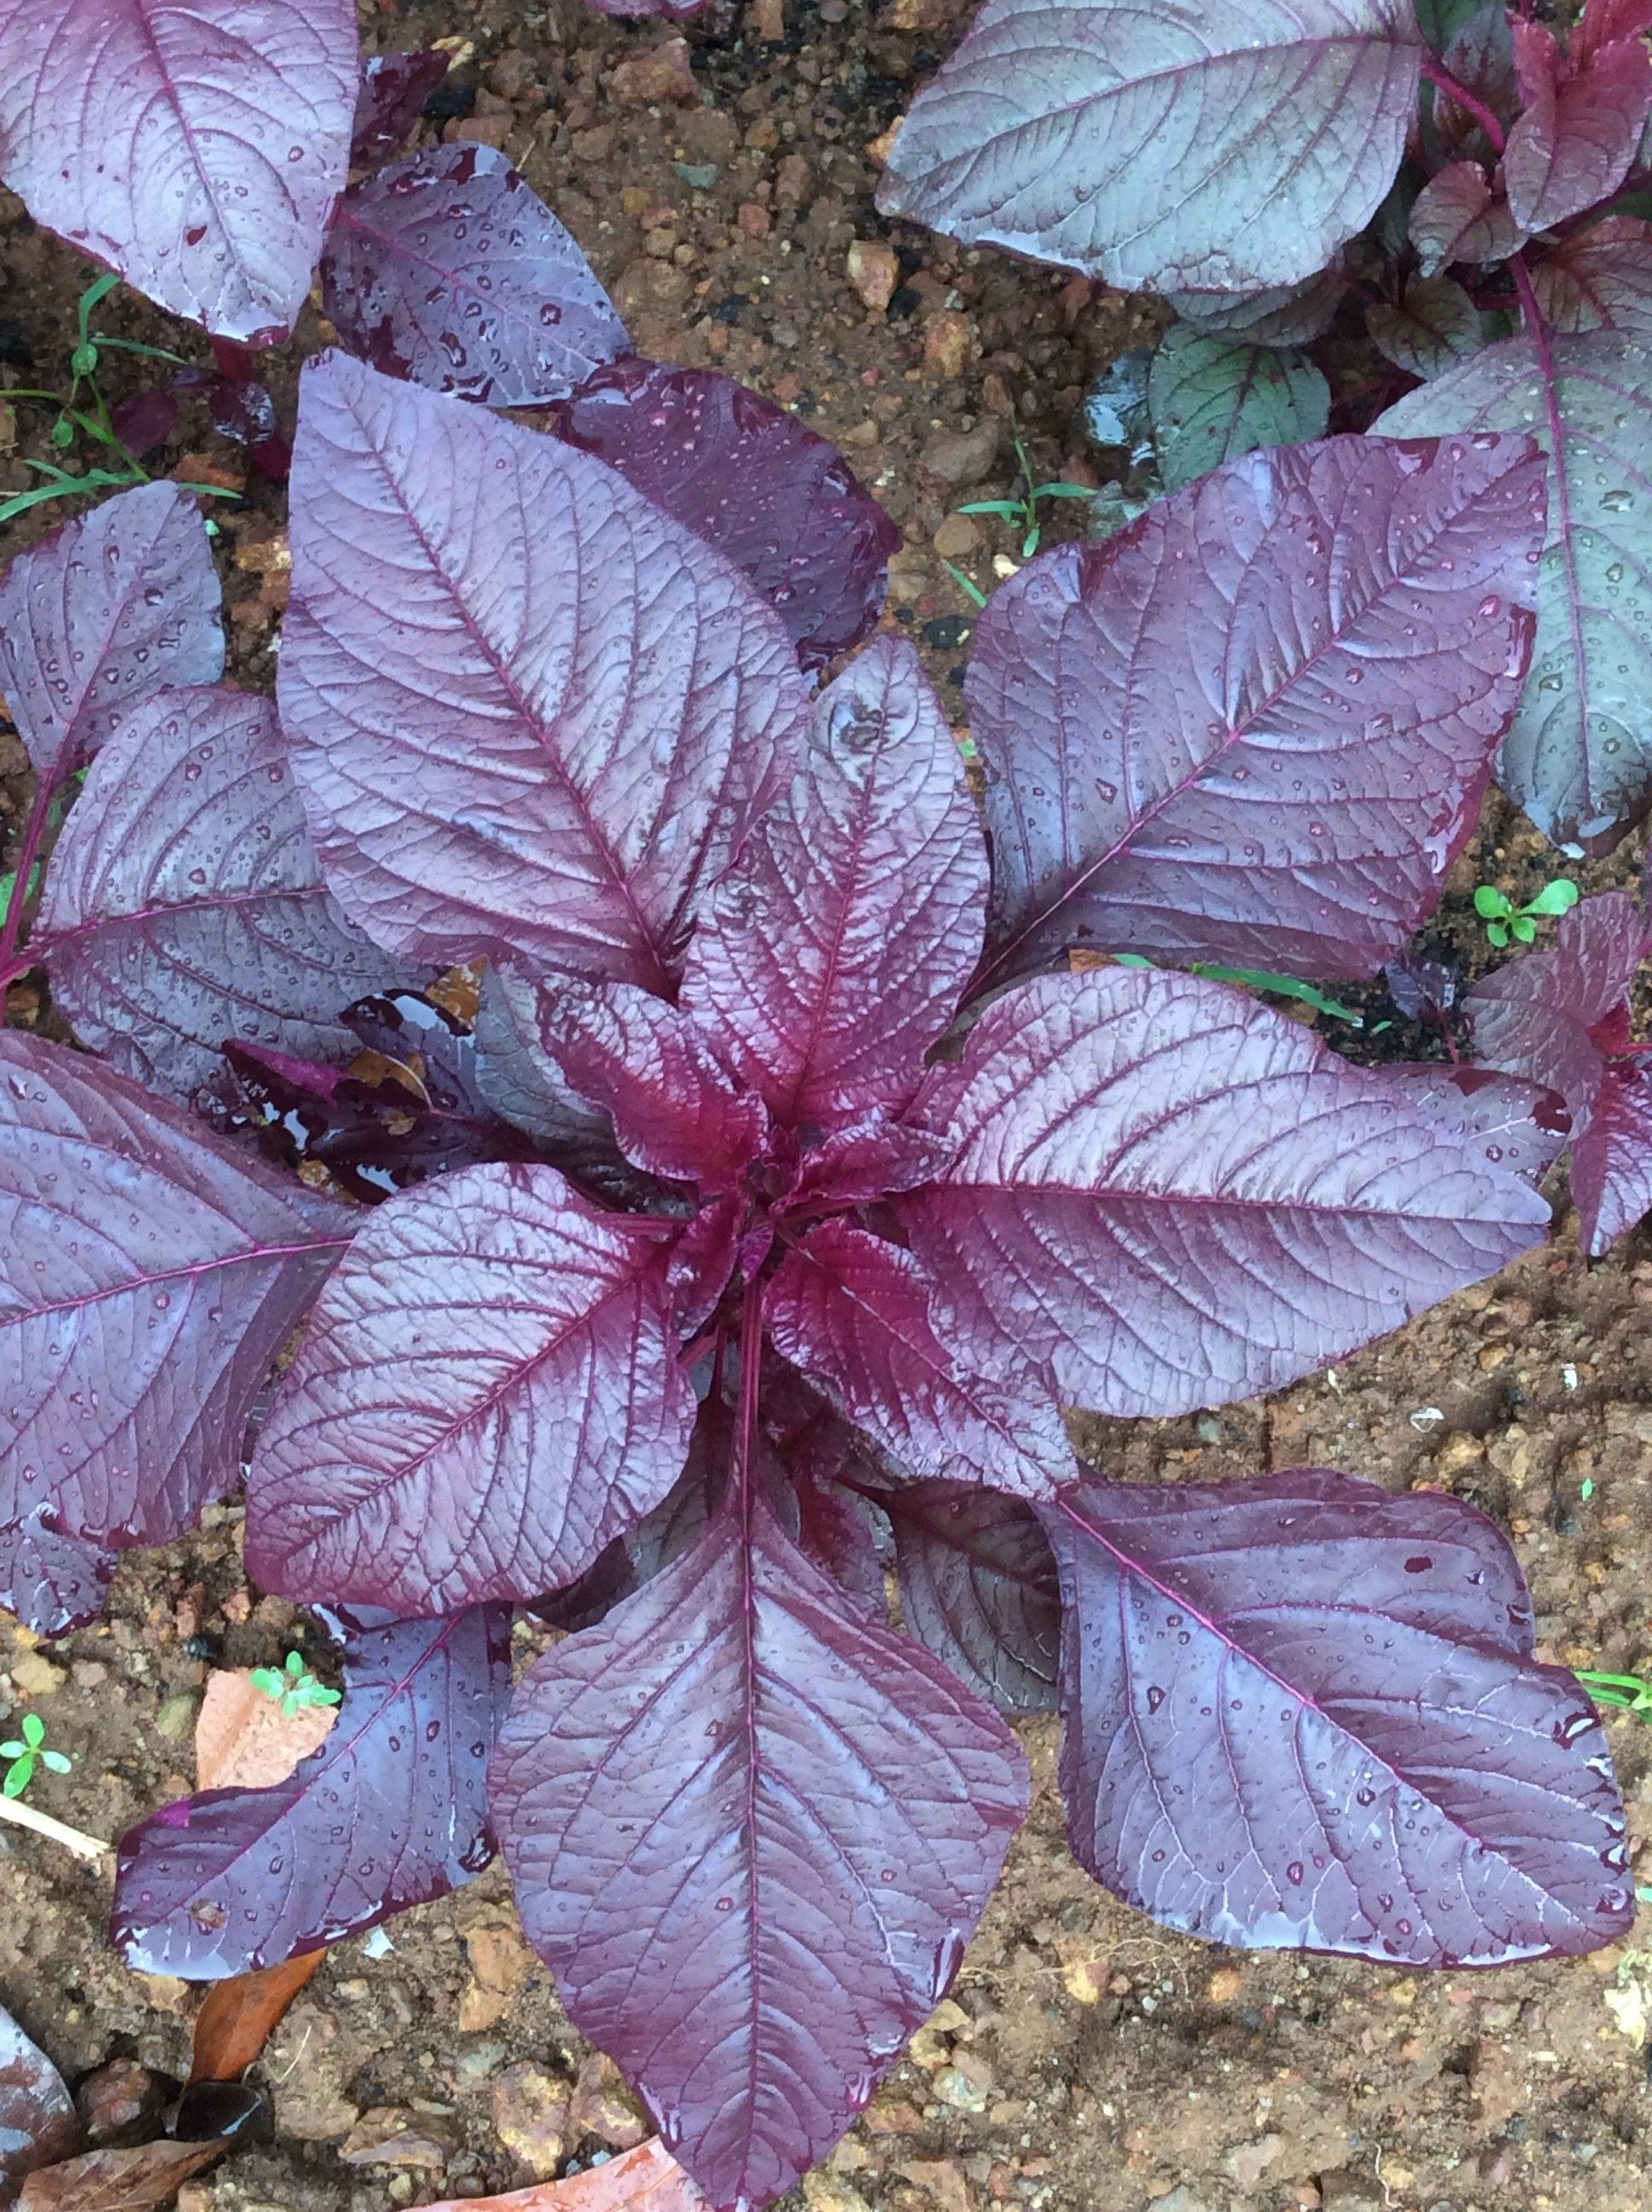 How To Grow Your Own Red Spinach Lifezshining Garden Soil Mix Red Spinach Mother Plant